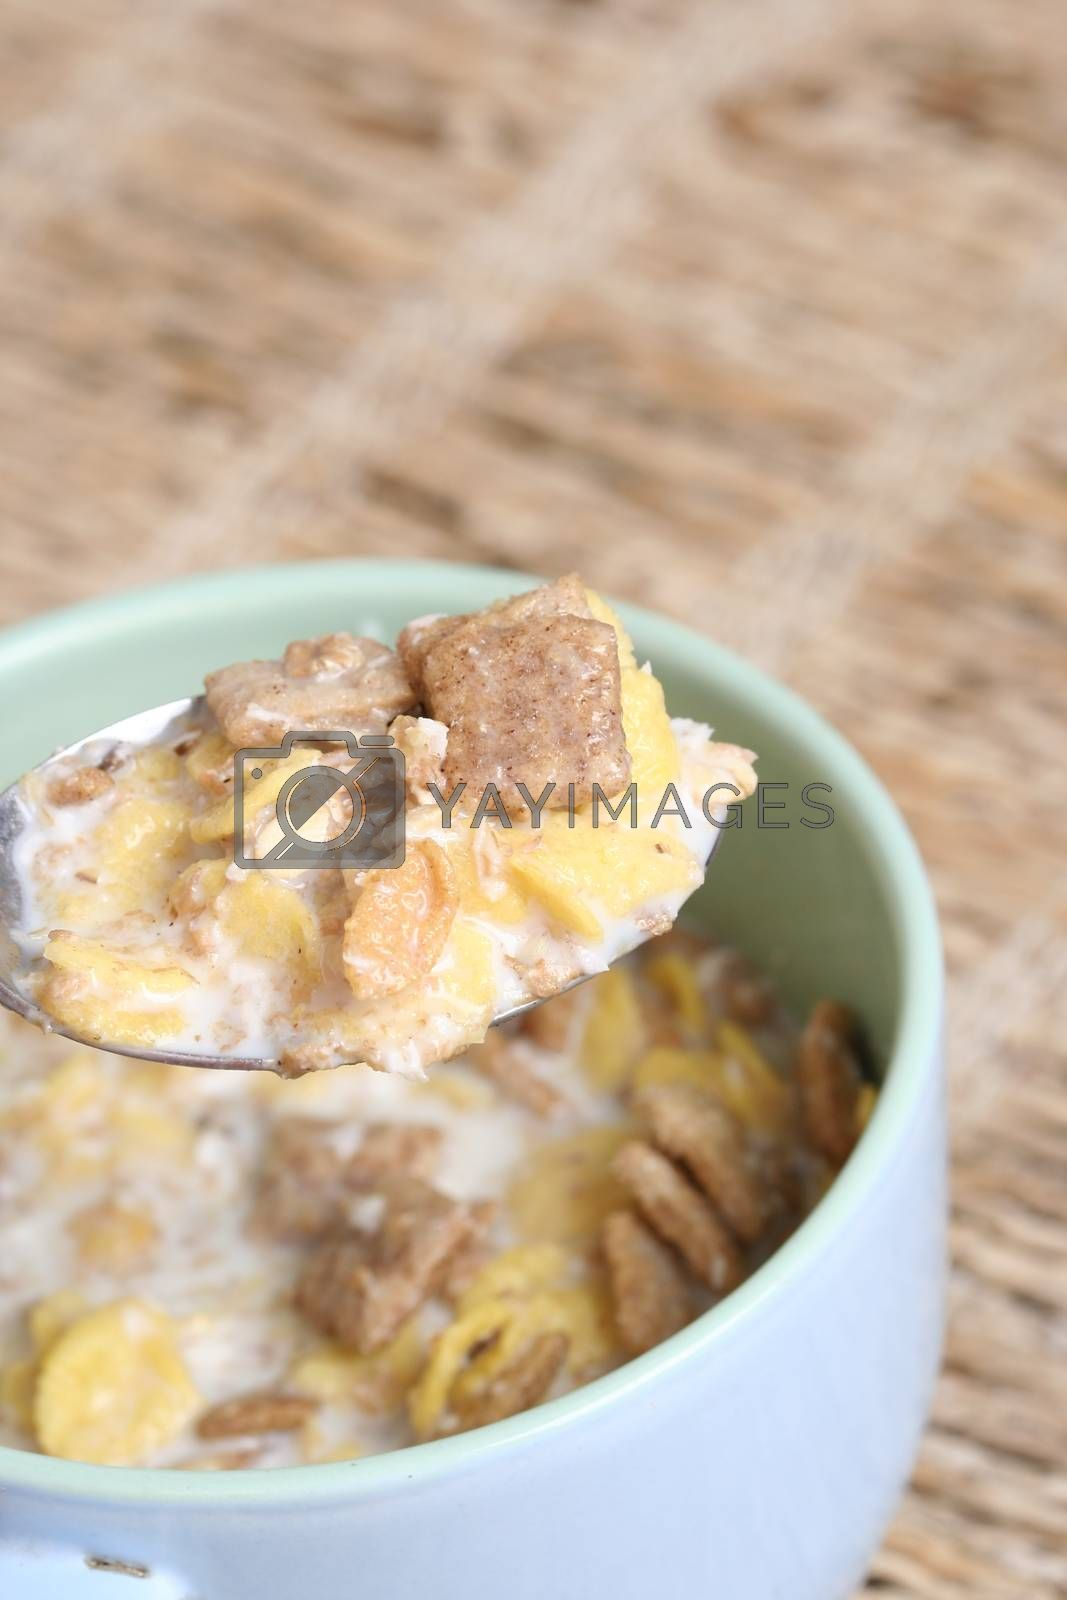 Crunchy breakfast cereals  in a blue bowl with a spoon .